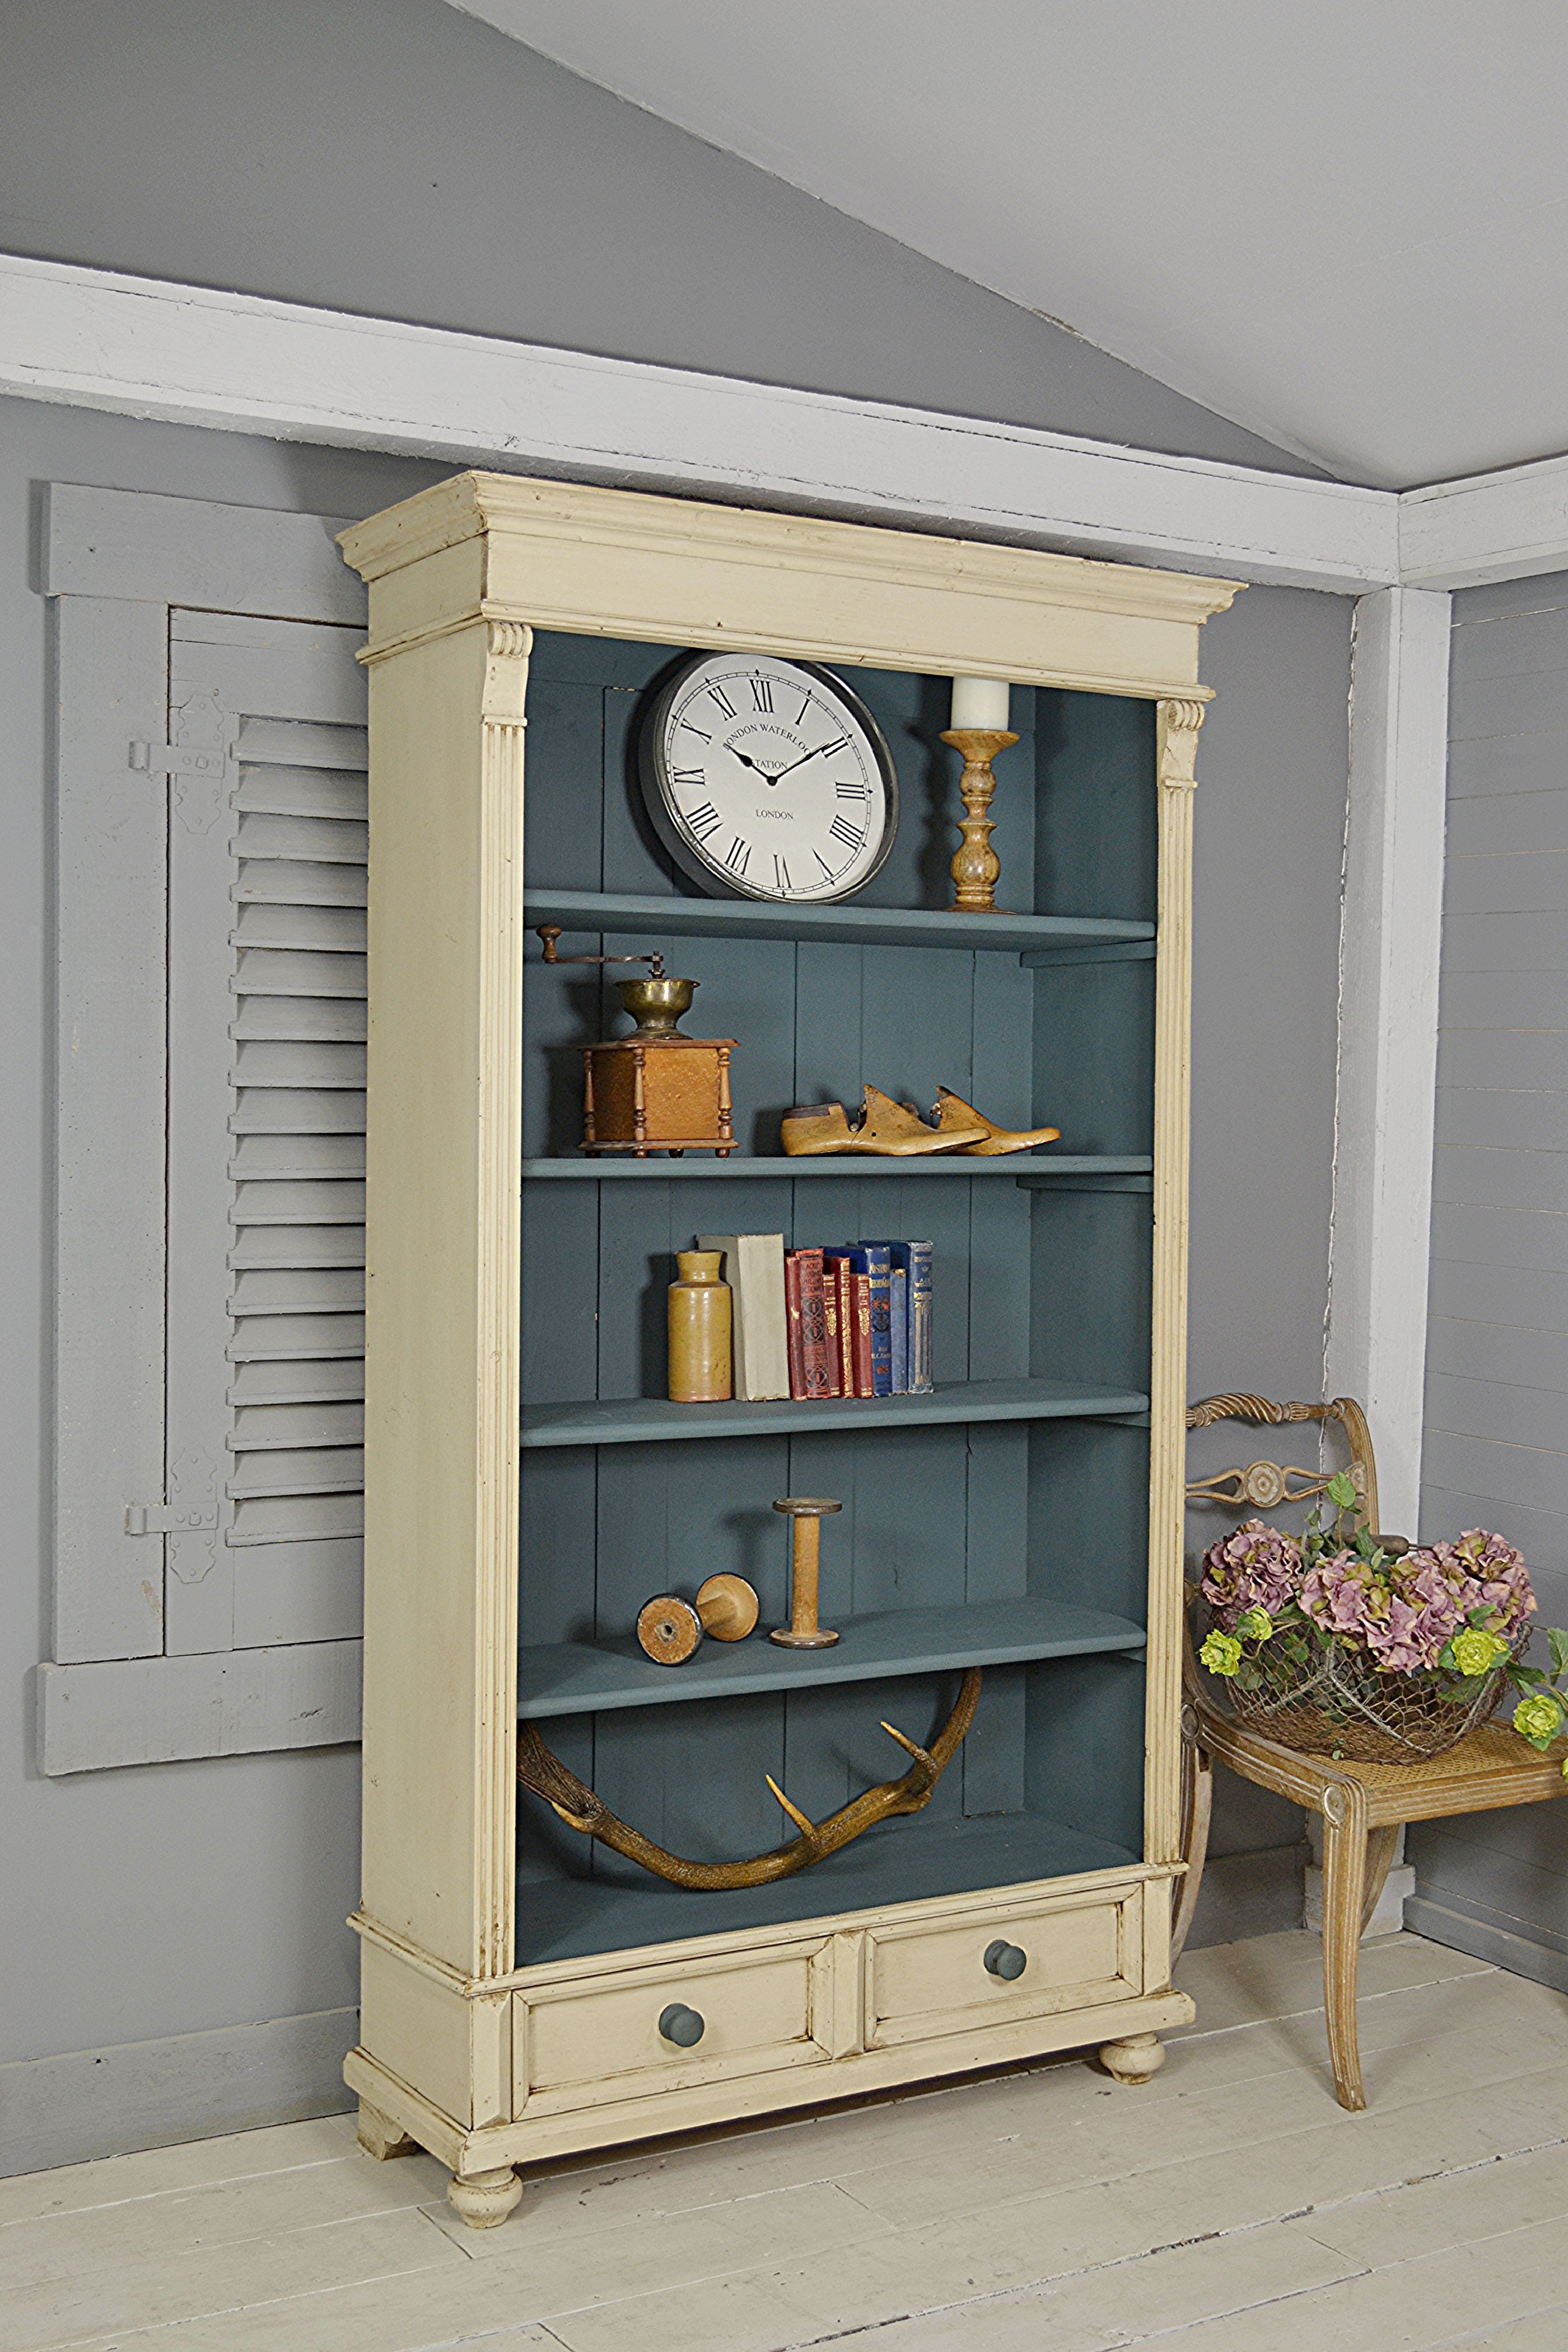 Best Letstrove Painted In Farrow Ball Shaded White With 640 x 480